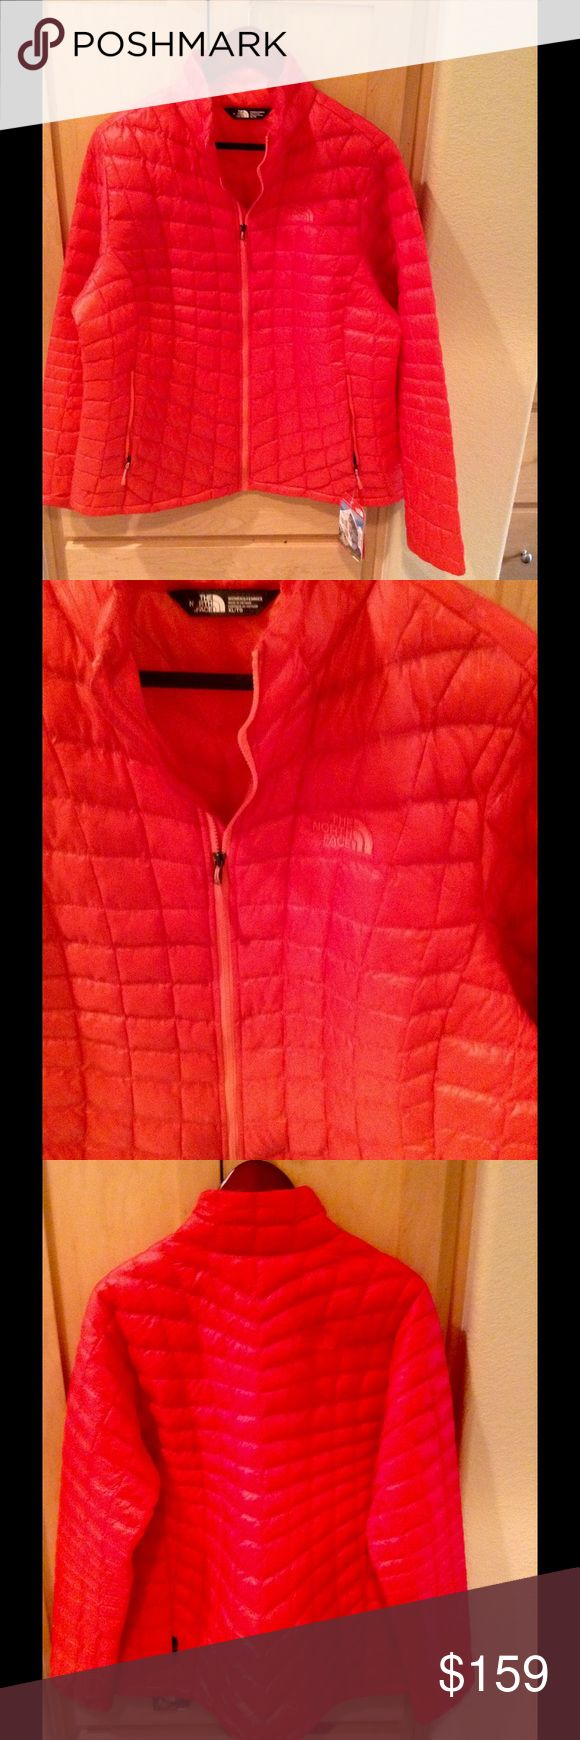 NEW The North Face Women's Thermoball Jacket Brand new Women's Thermoball Jacket in melon red color in XL.  No trade.  Price is firm. The North Face Jackets & Coats